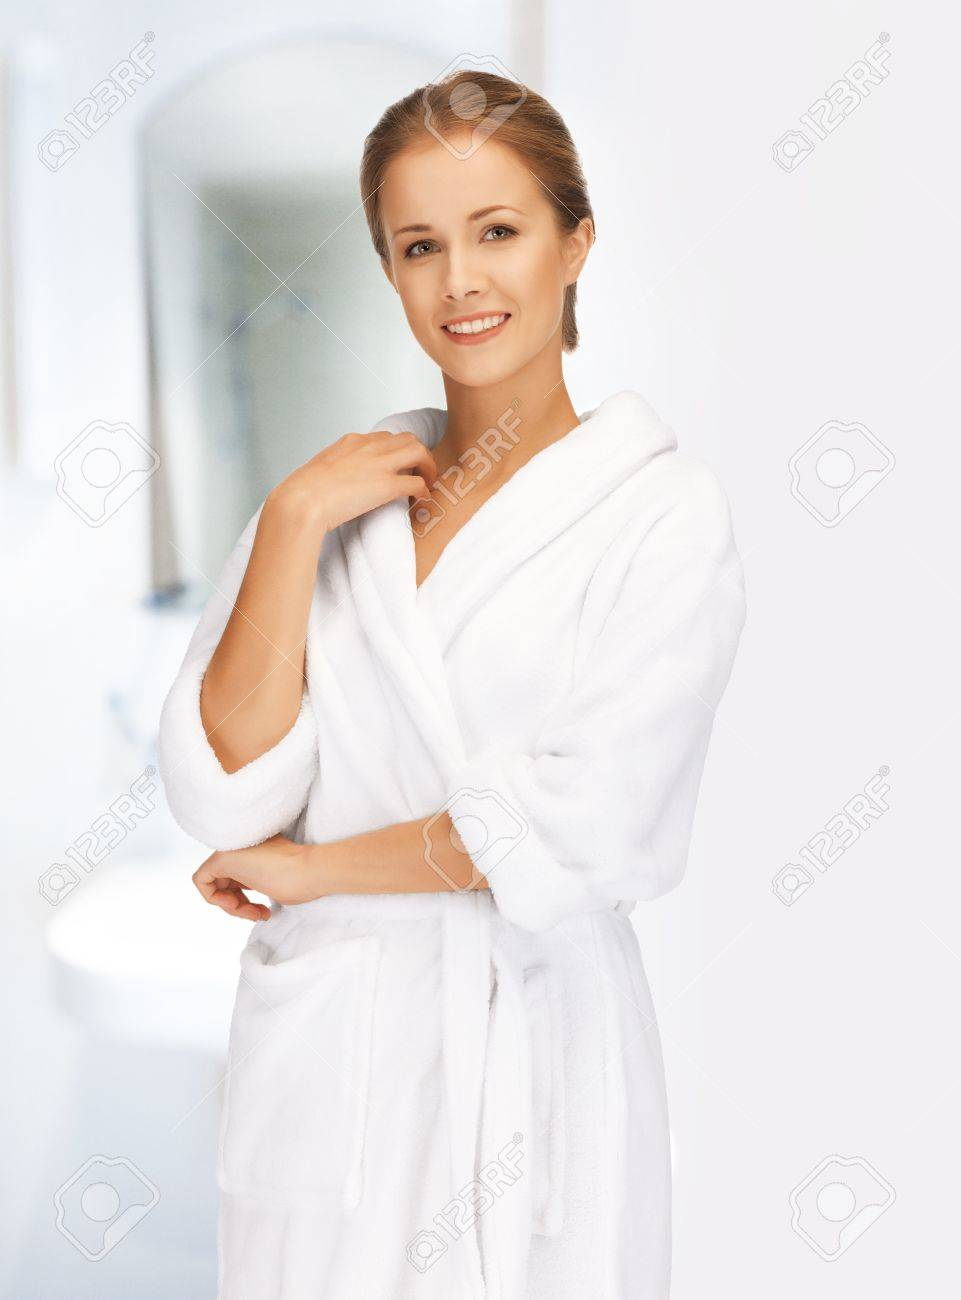 picture of beautiful woman in white bathrobe Stock Photo - 19207207